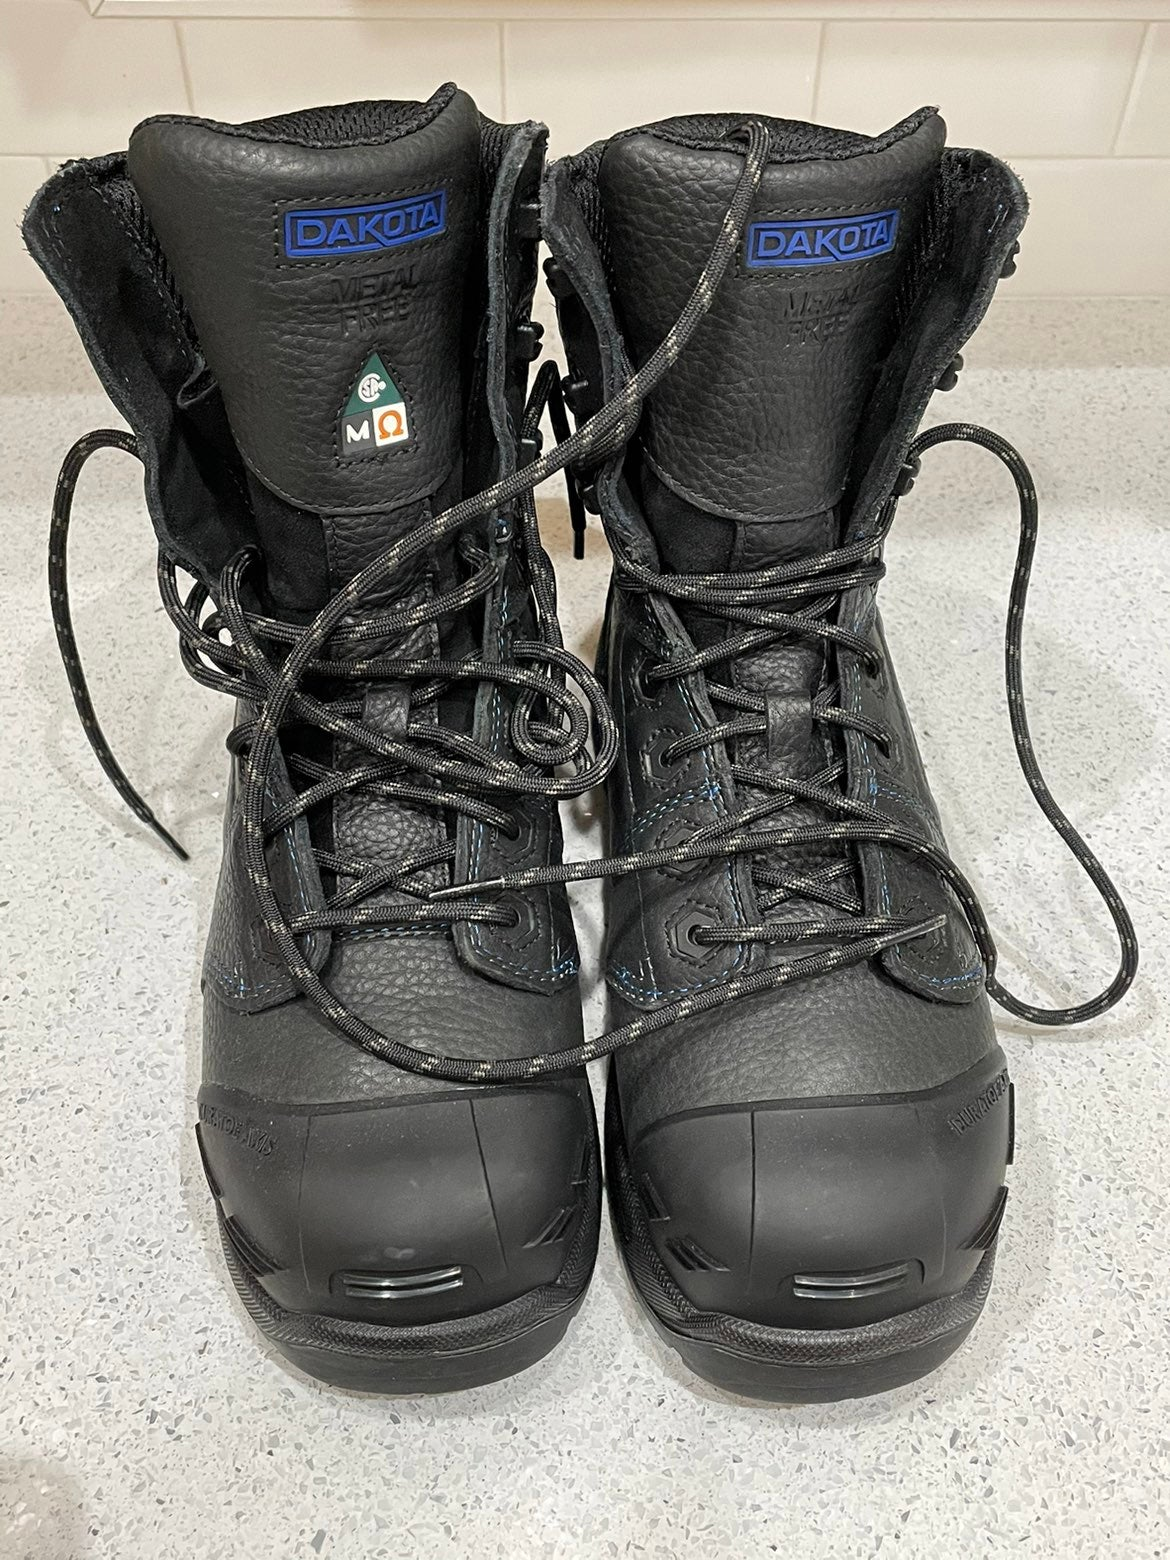 Dakota insulated work boots